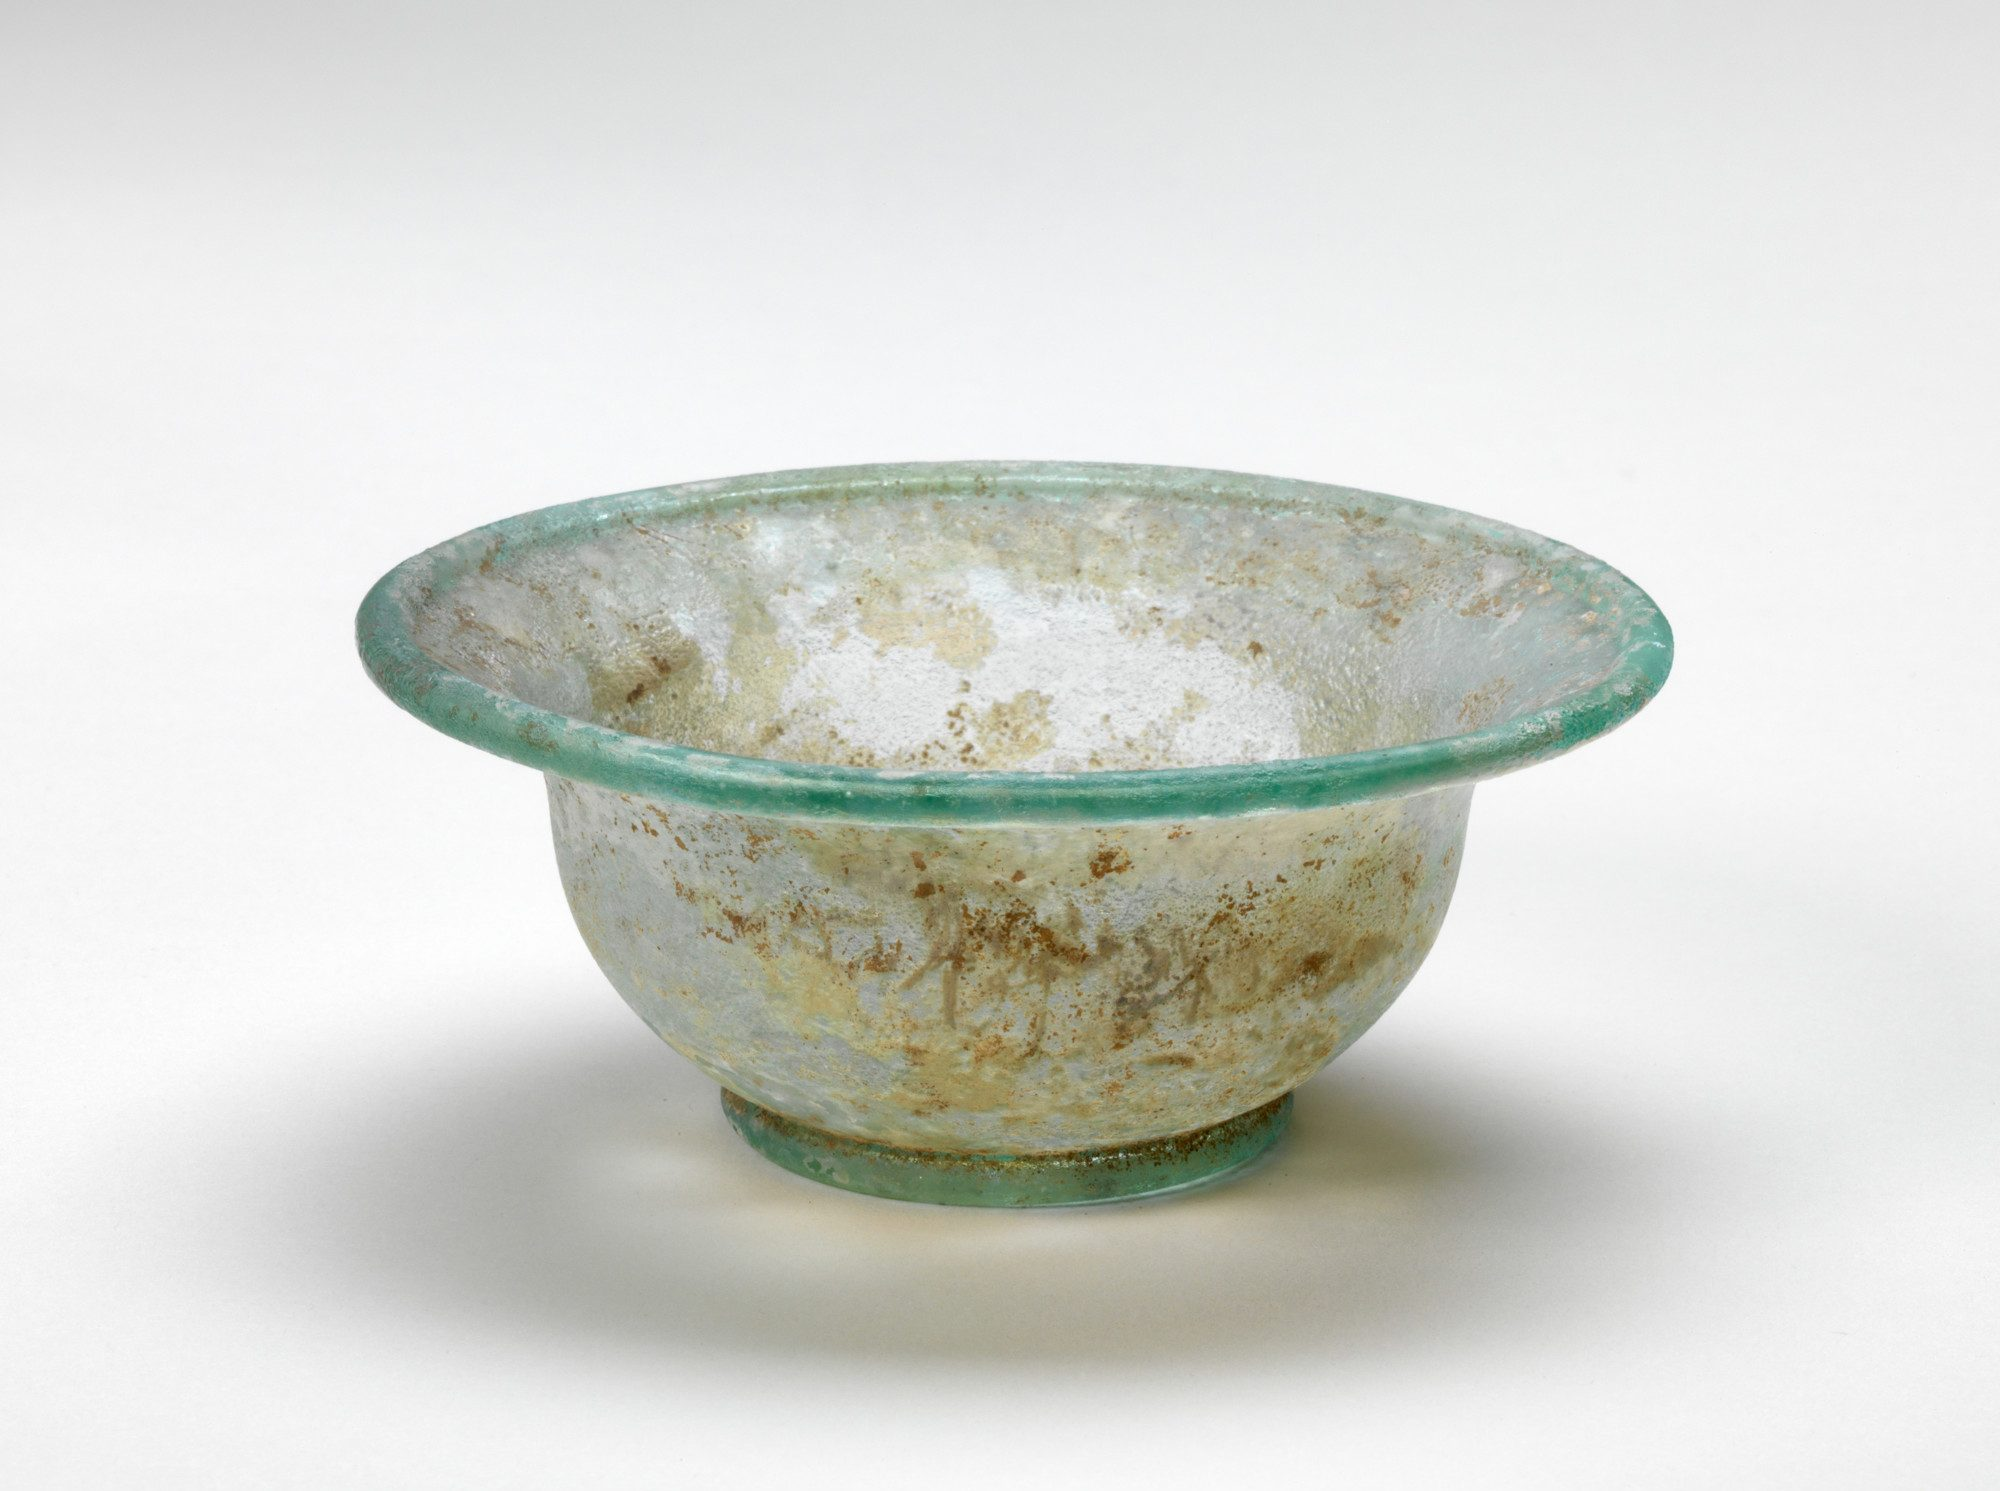 Syrian, wide-rimmed bowl, 1-299 AD. Free-blown glass, rim: 4 3/16 in. Gift of Mrs. Charles T. Cook, 30.1.16.